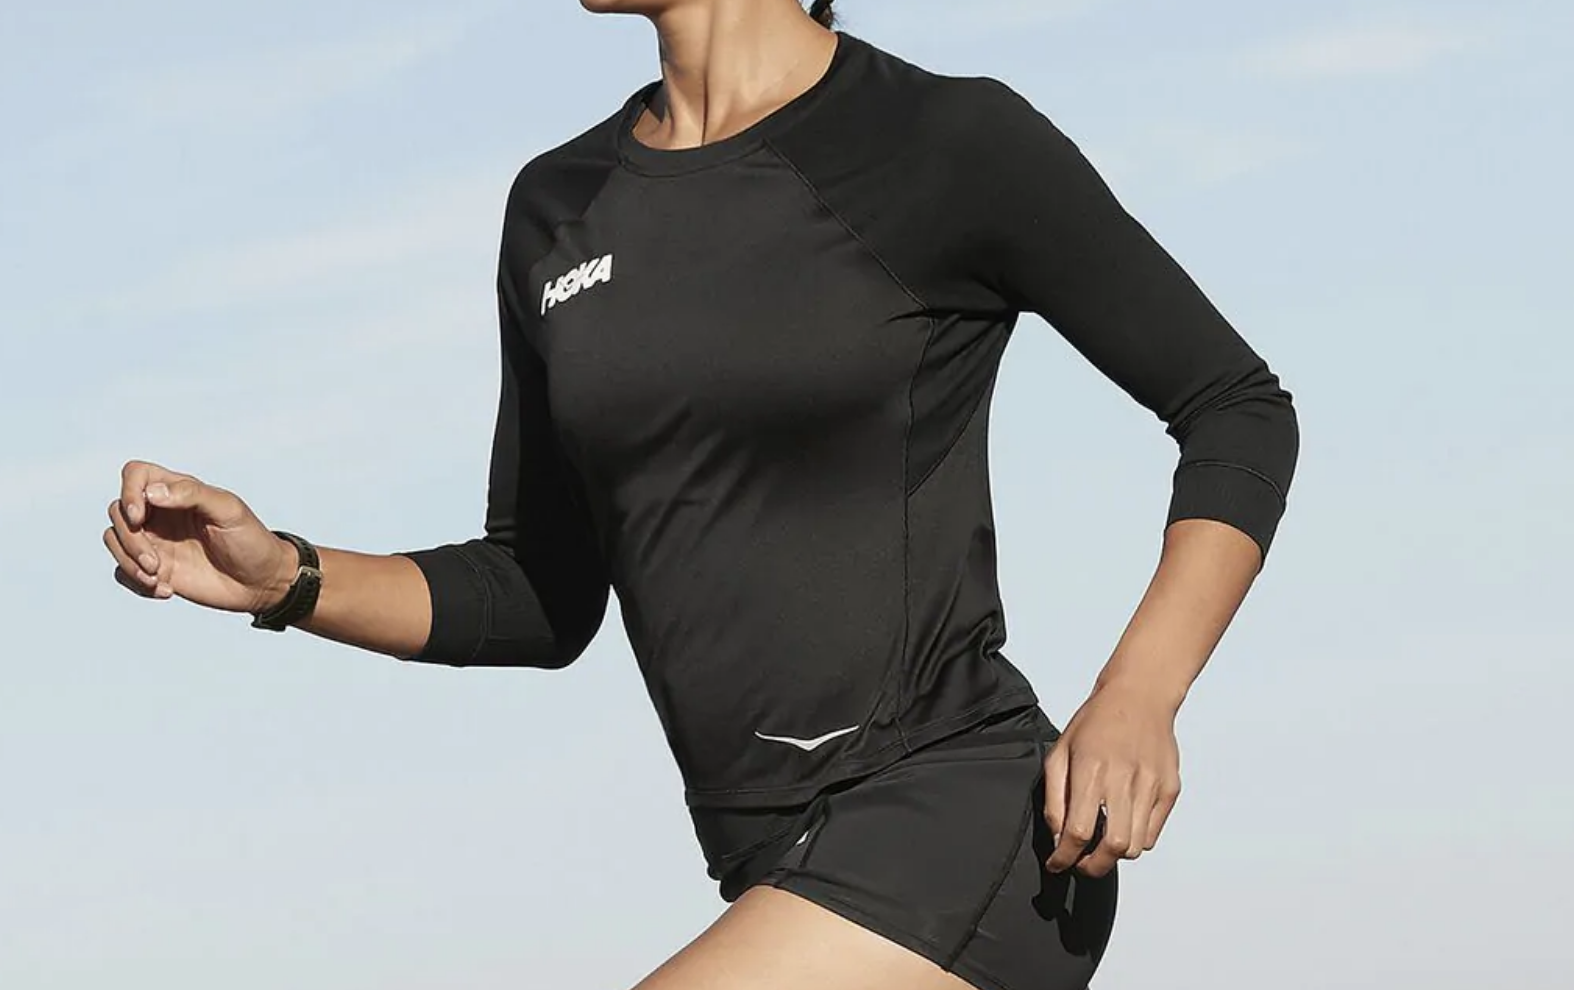 hoka 3/4 long sleeve shirt